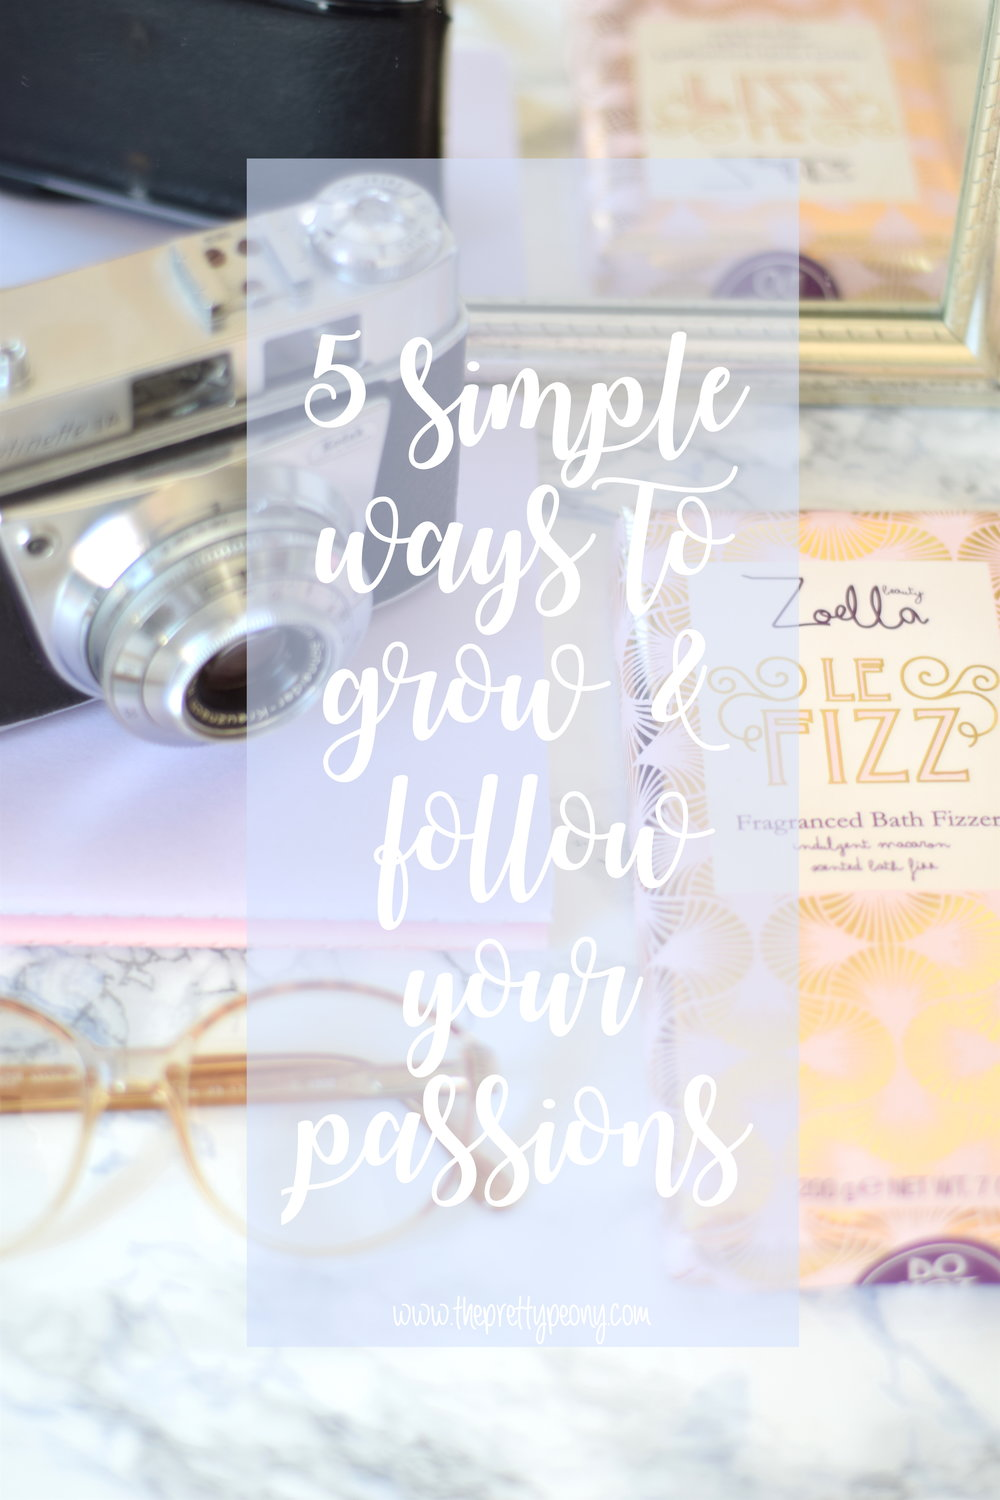 5 Simple Ways To Follow and Grow Your Passions | www.theprettypeony.com